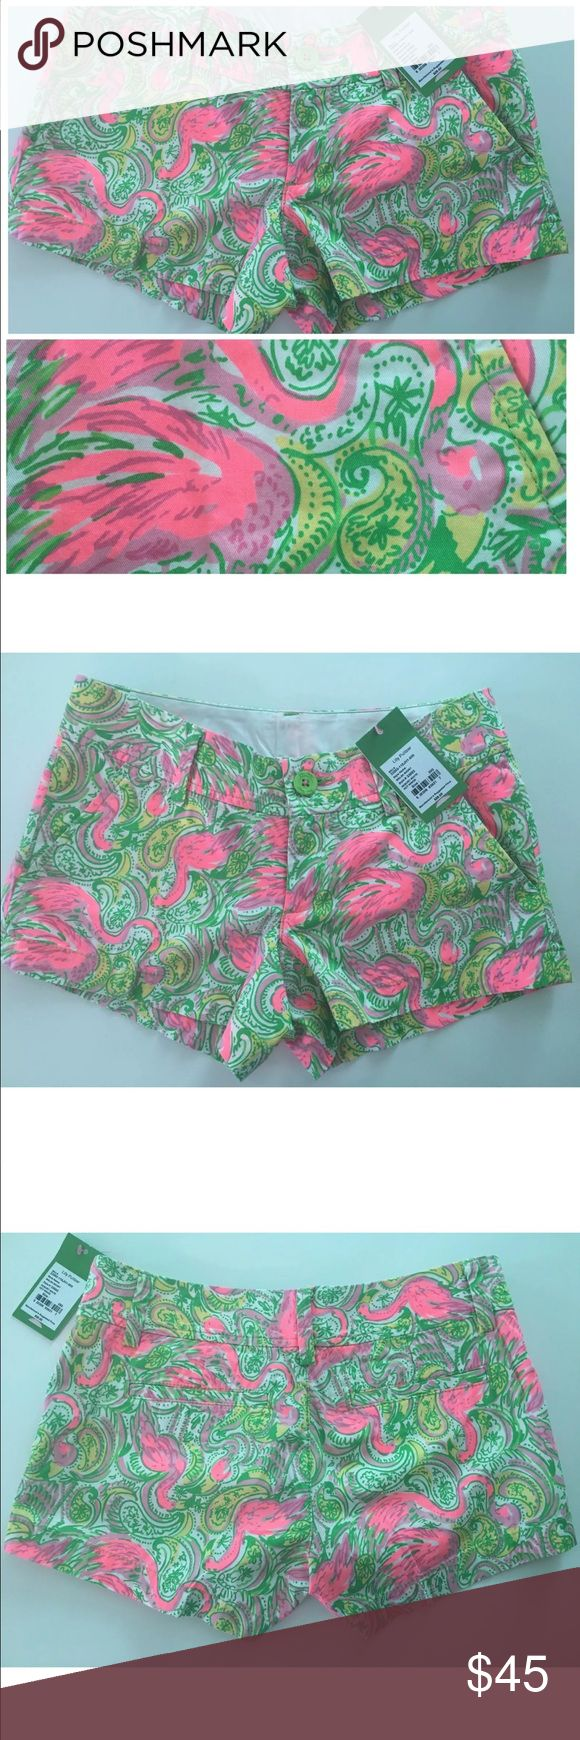 Lilly Pulitzer Walsh Shorts Flamingo Hot Wings *read below for measurements* This is a pair of Lilly Pulitzer Walsh shorts in resort white Hot Wings size 000. They are new with tag originally $58.  